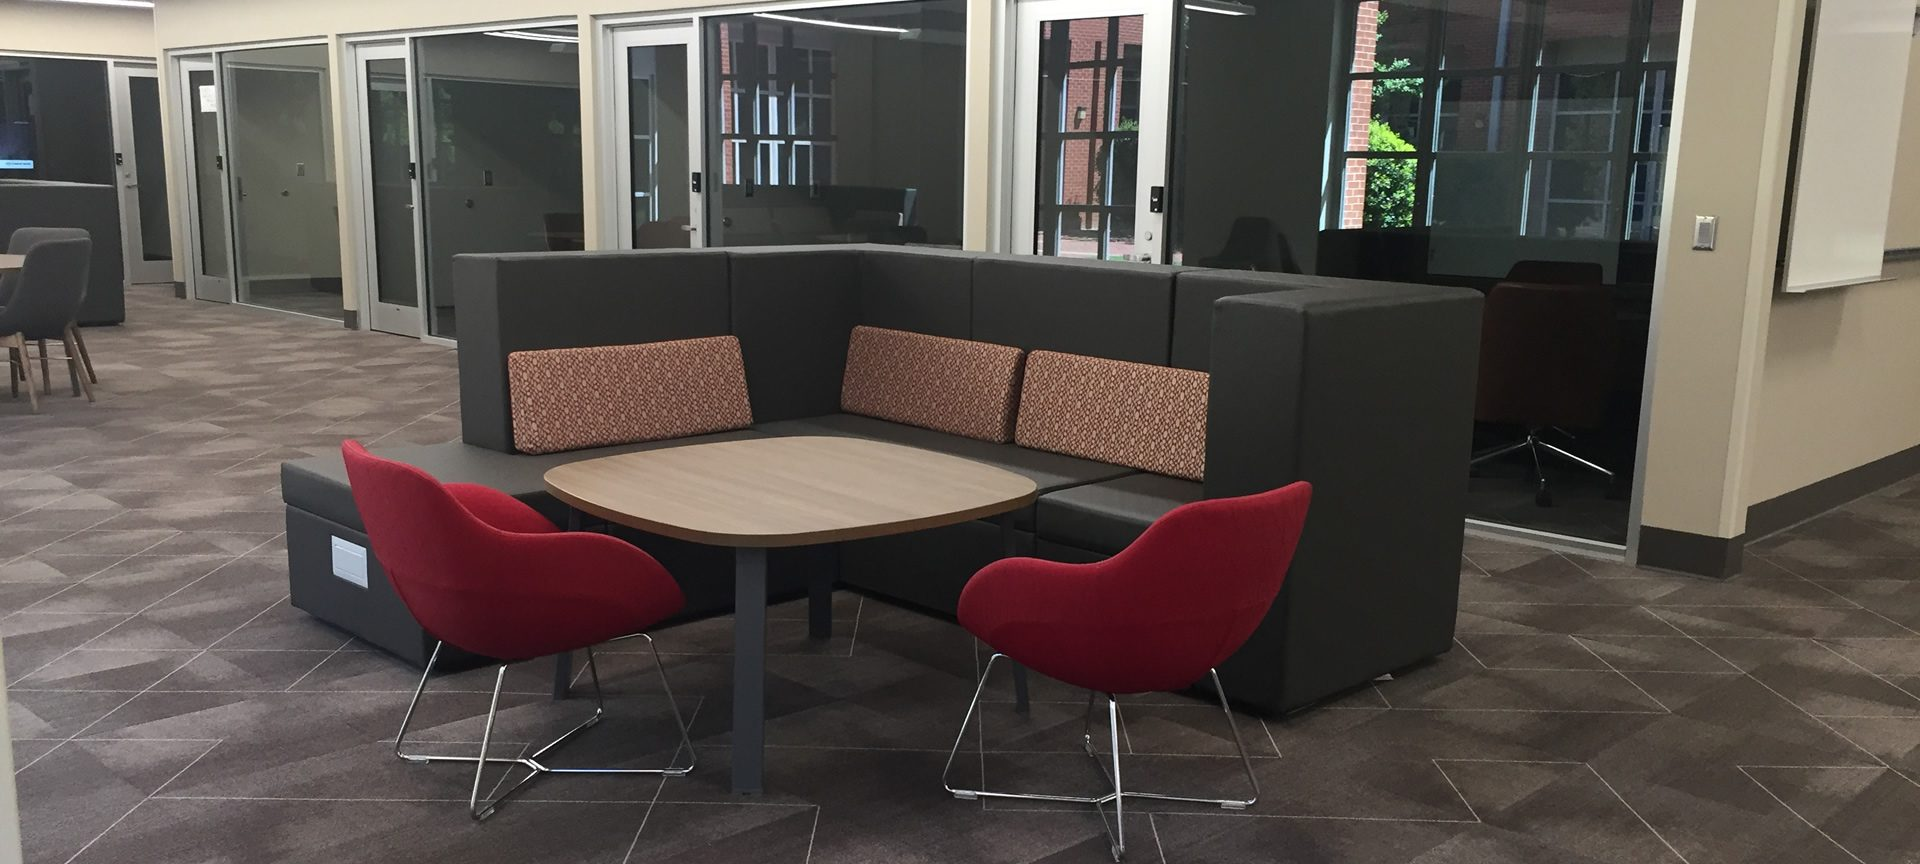 Capital Hall Student Community Engagement Center Seating